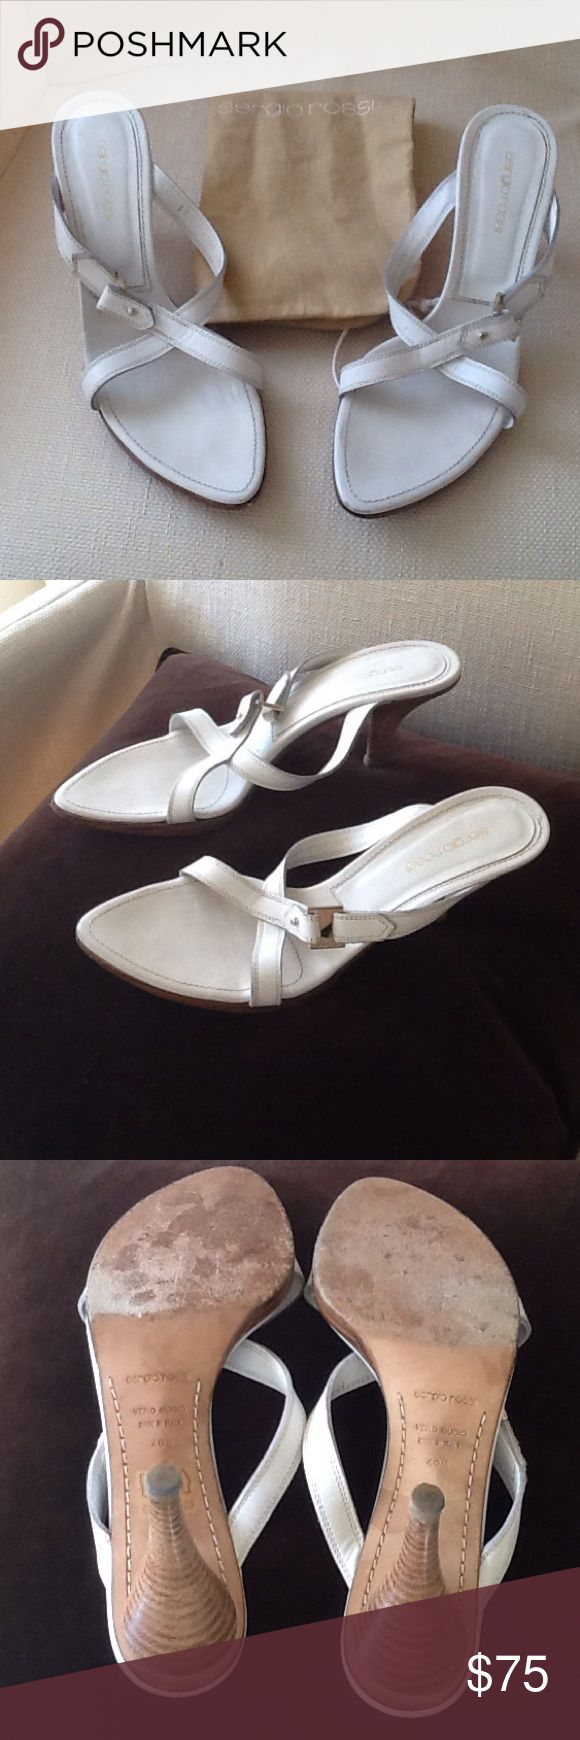 Sergio Rossi White Sandles In great condition. Worn only for fashion show models. Size 10.50 Sergio Rossi Shoes Sandals